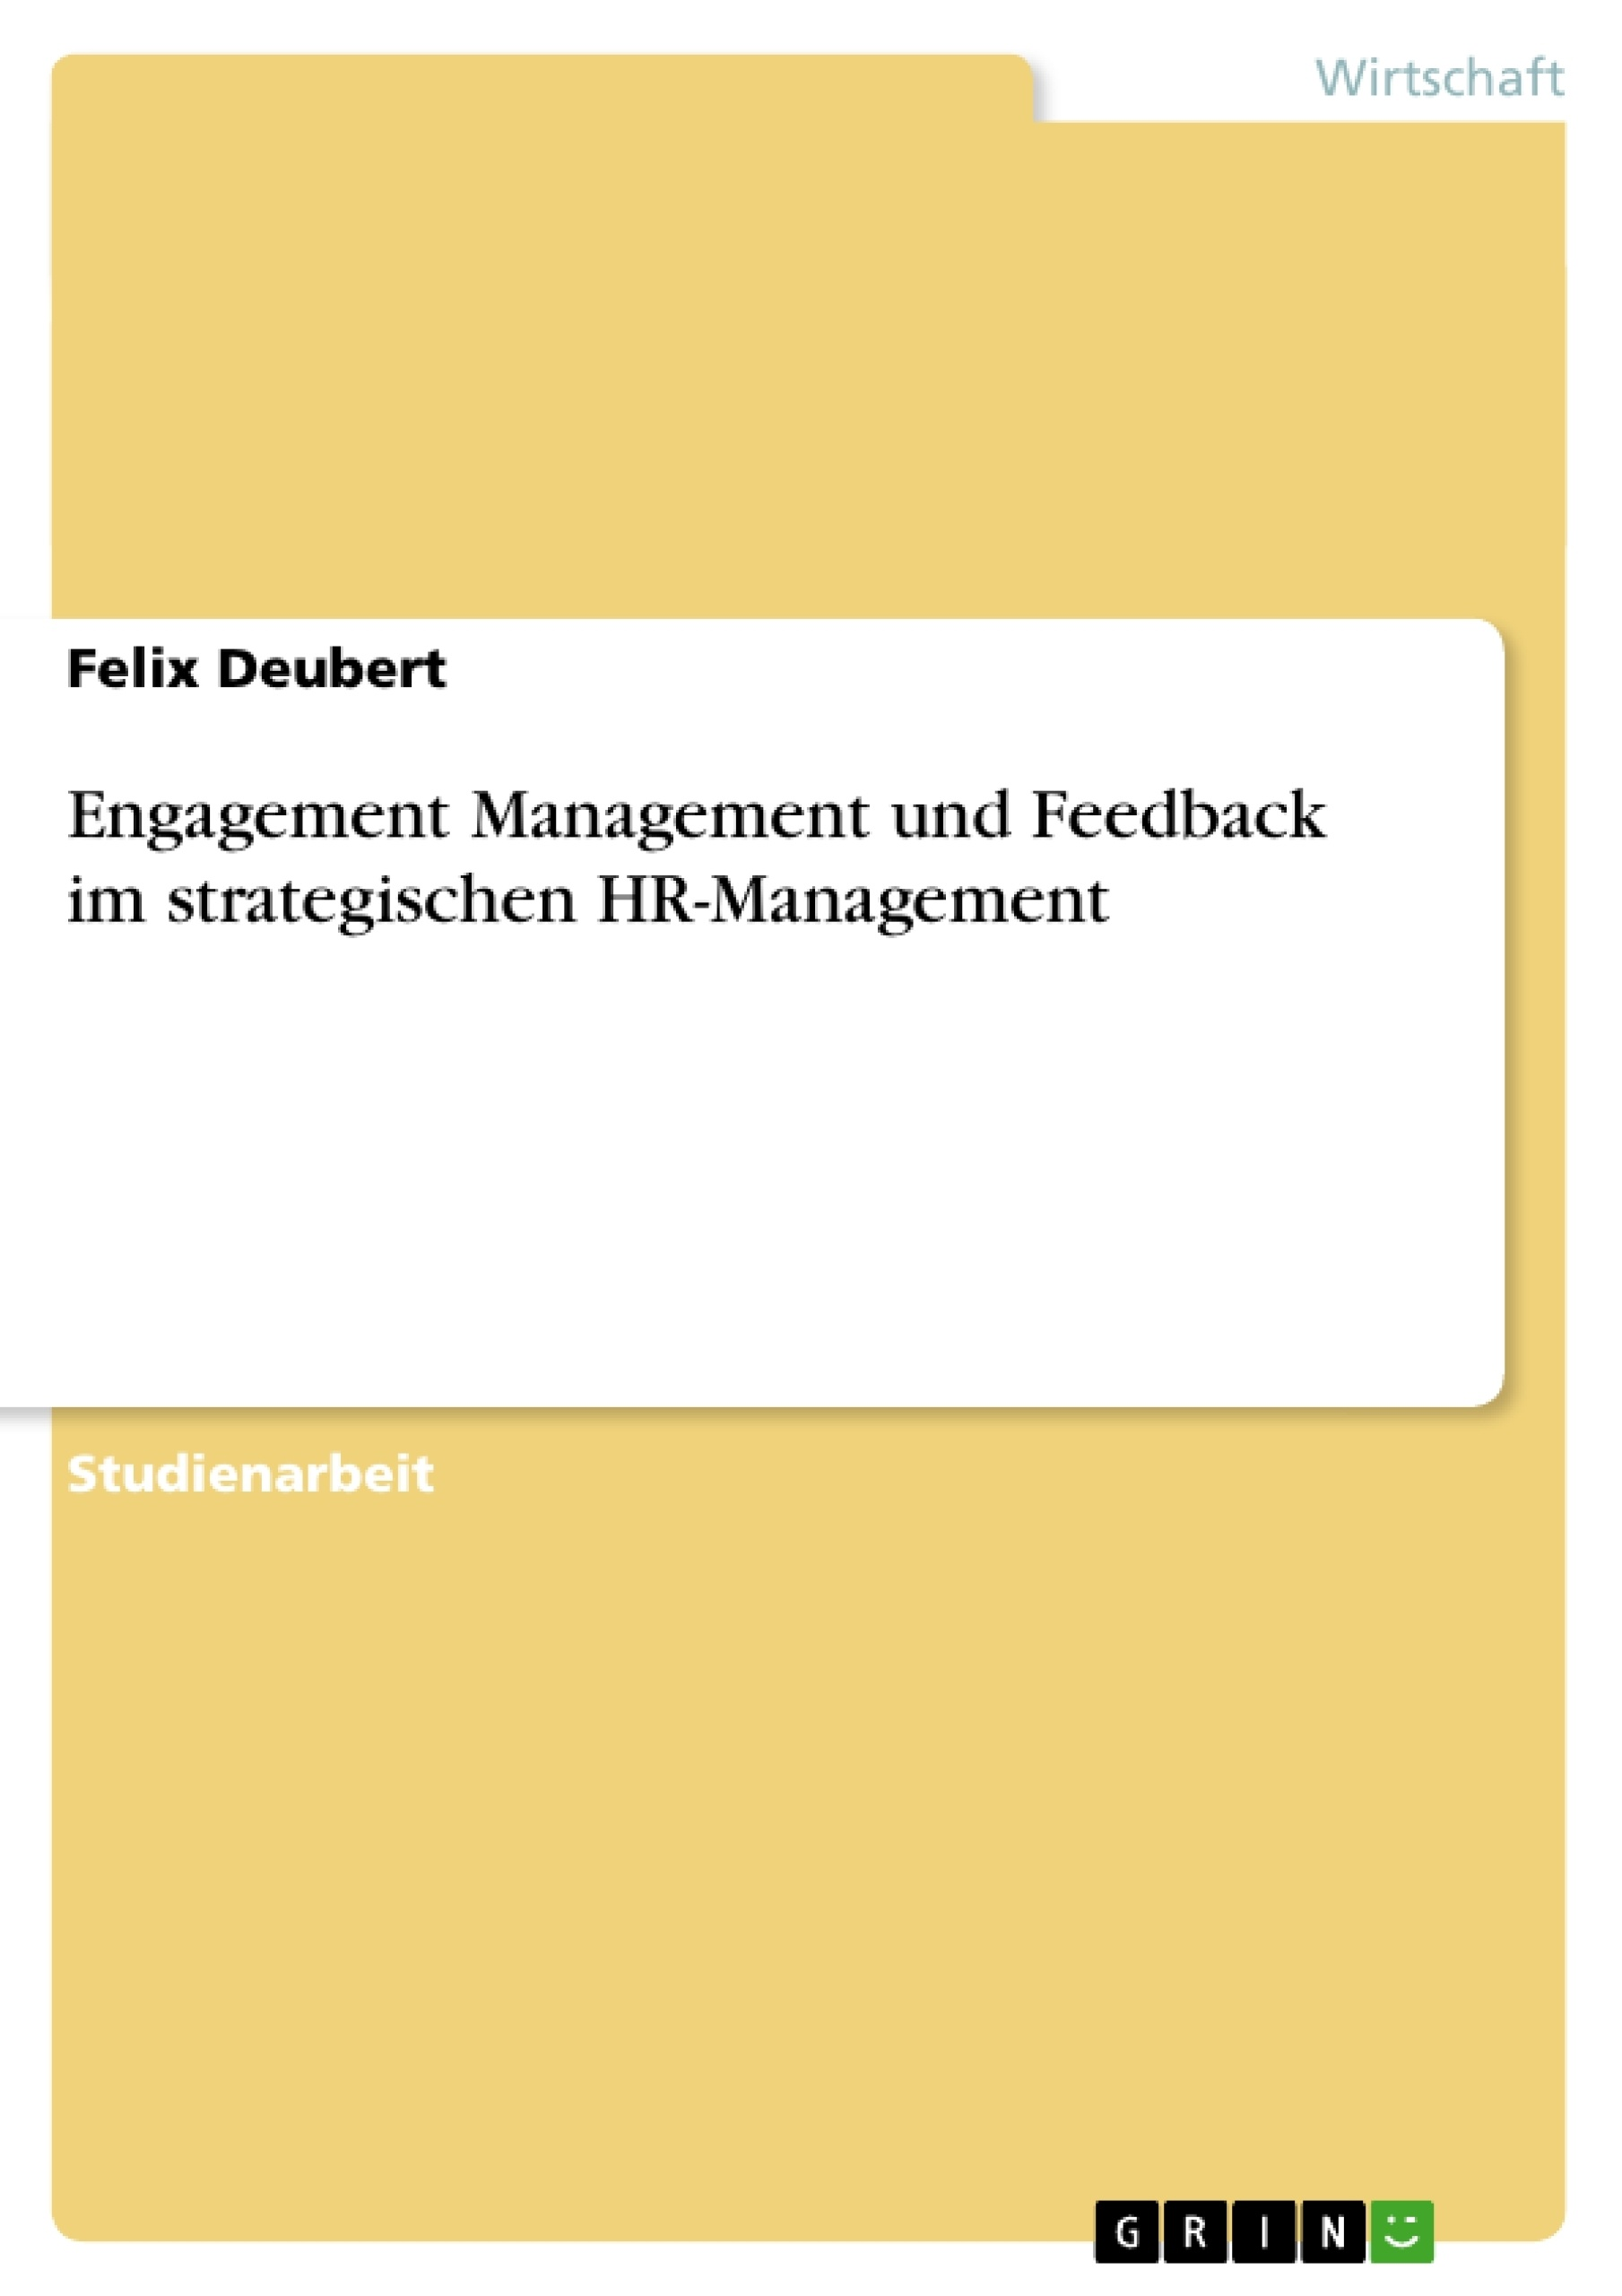 Titel: Engagement Management und Feedback im strategischen HR-Management